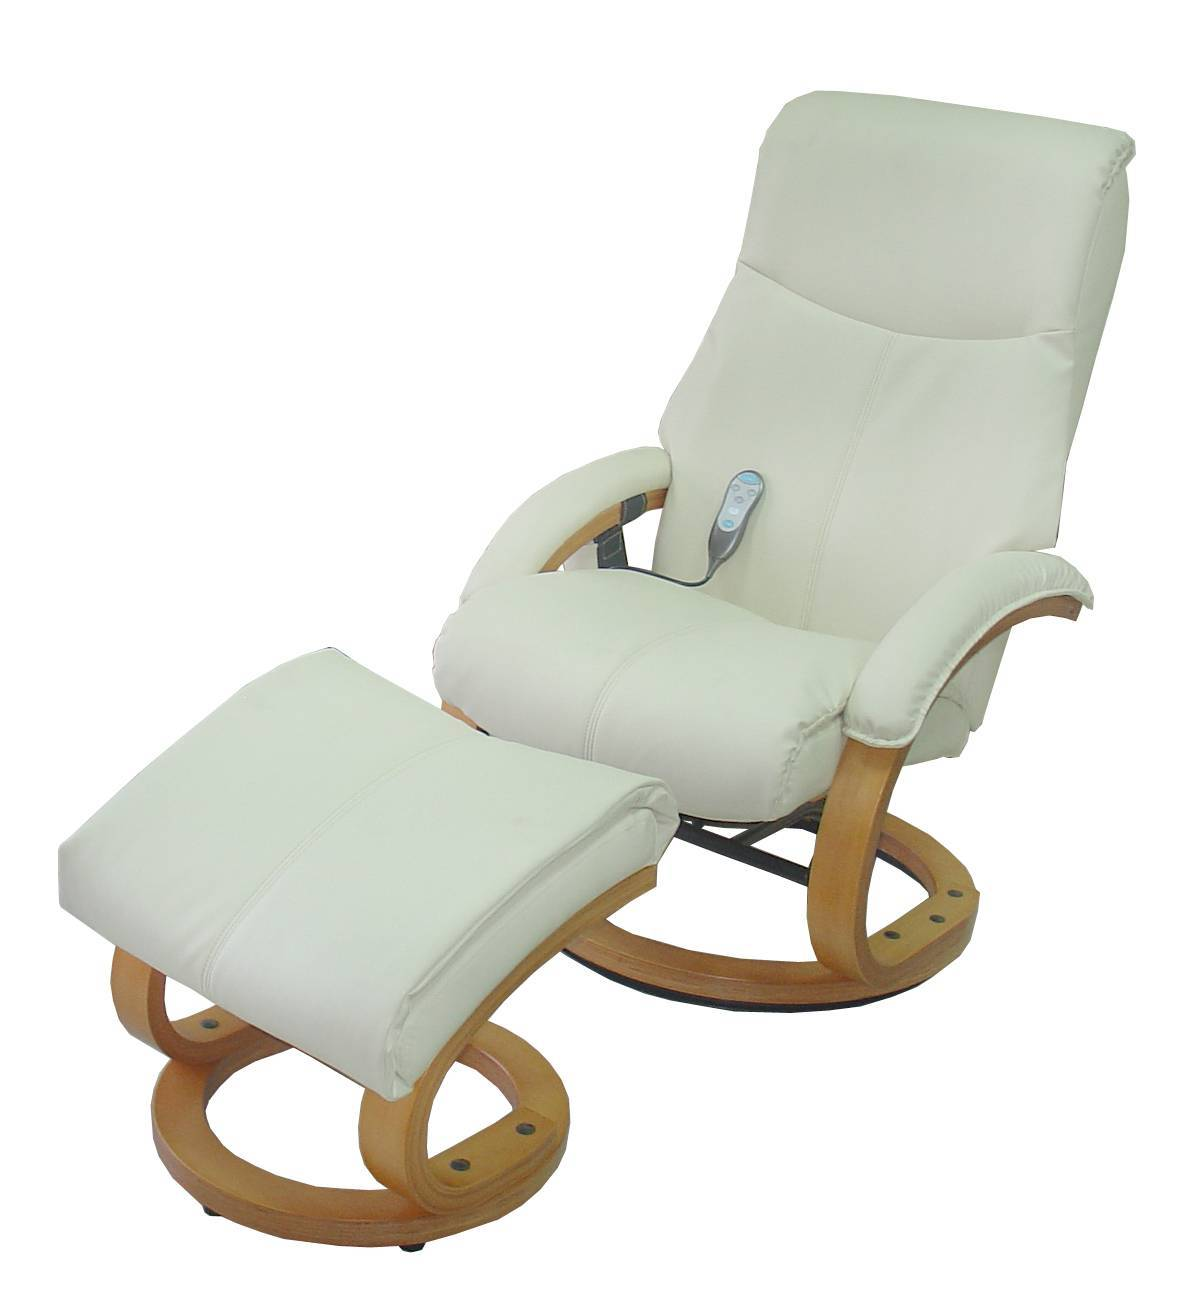 BH-8181 Robotic Massage Recliner Chair, Massager, Home Furniture, House Furniture